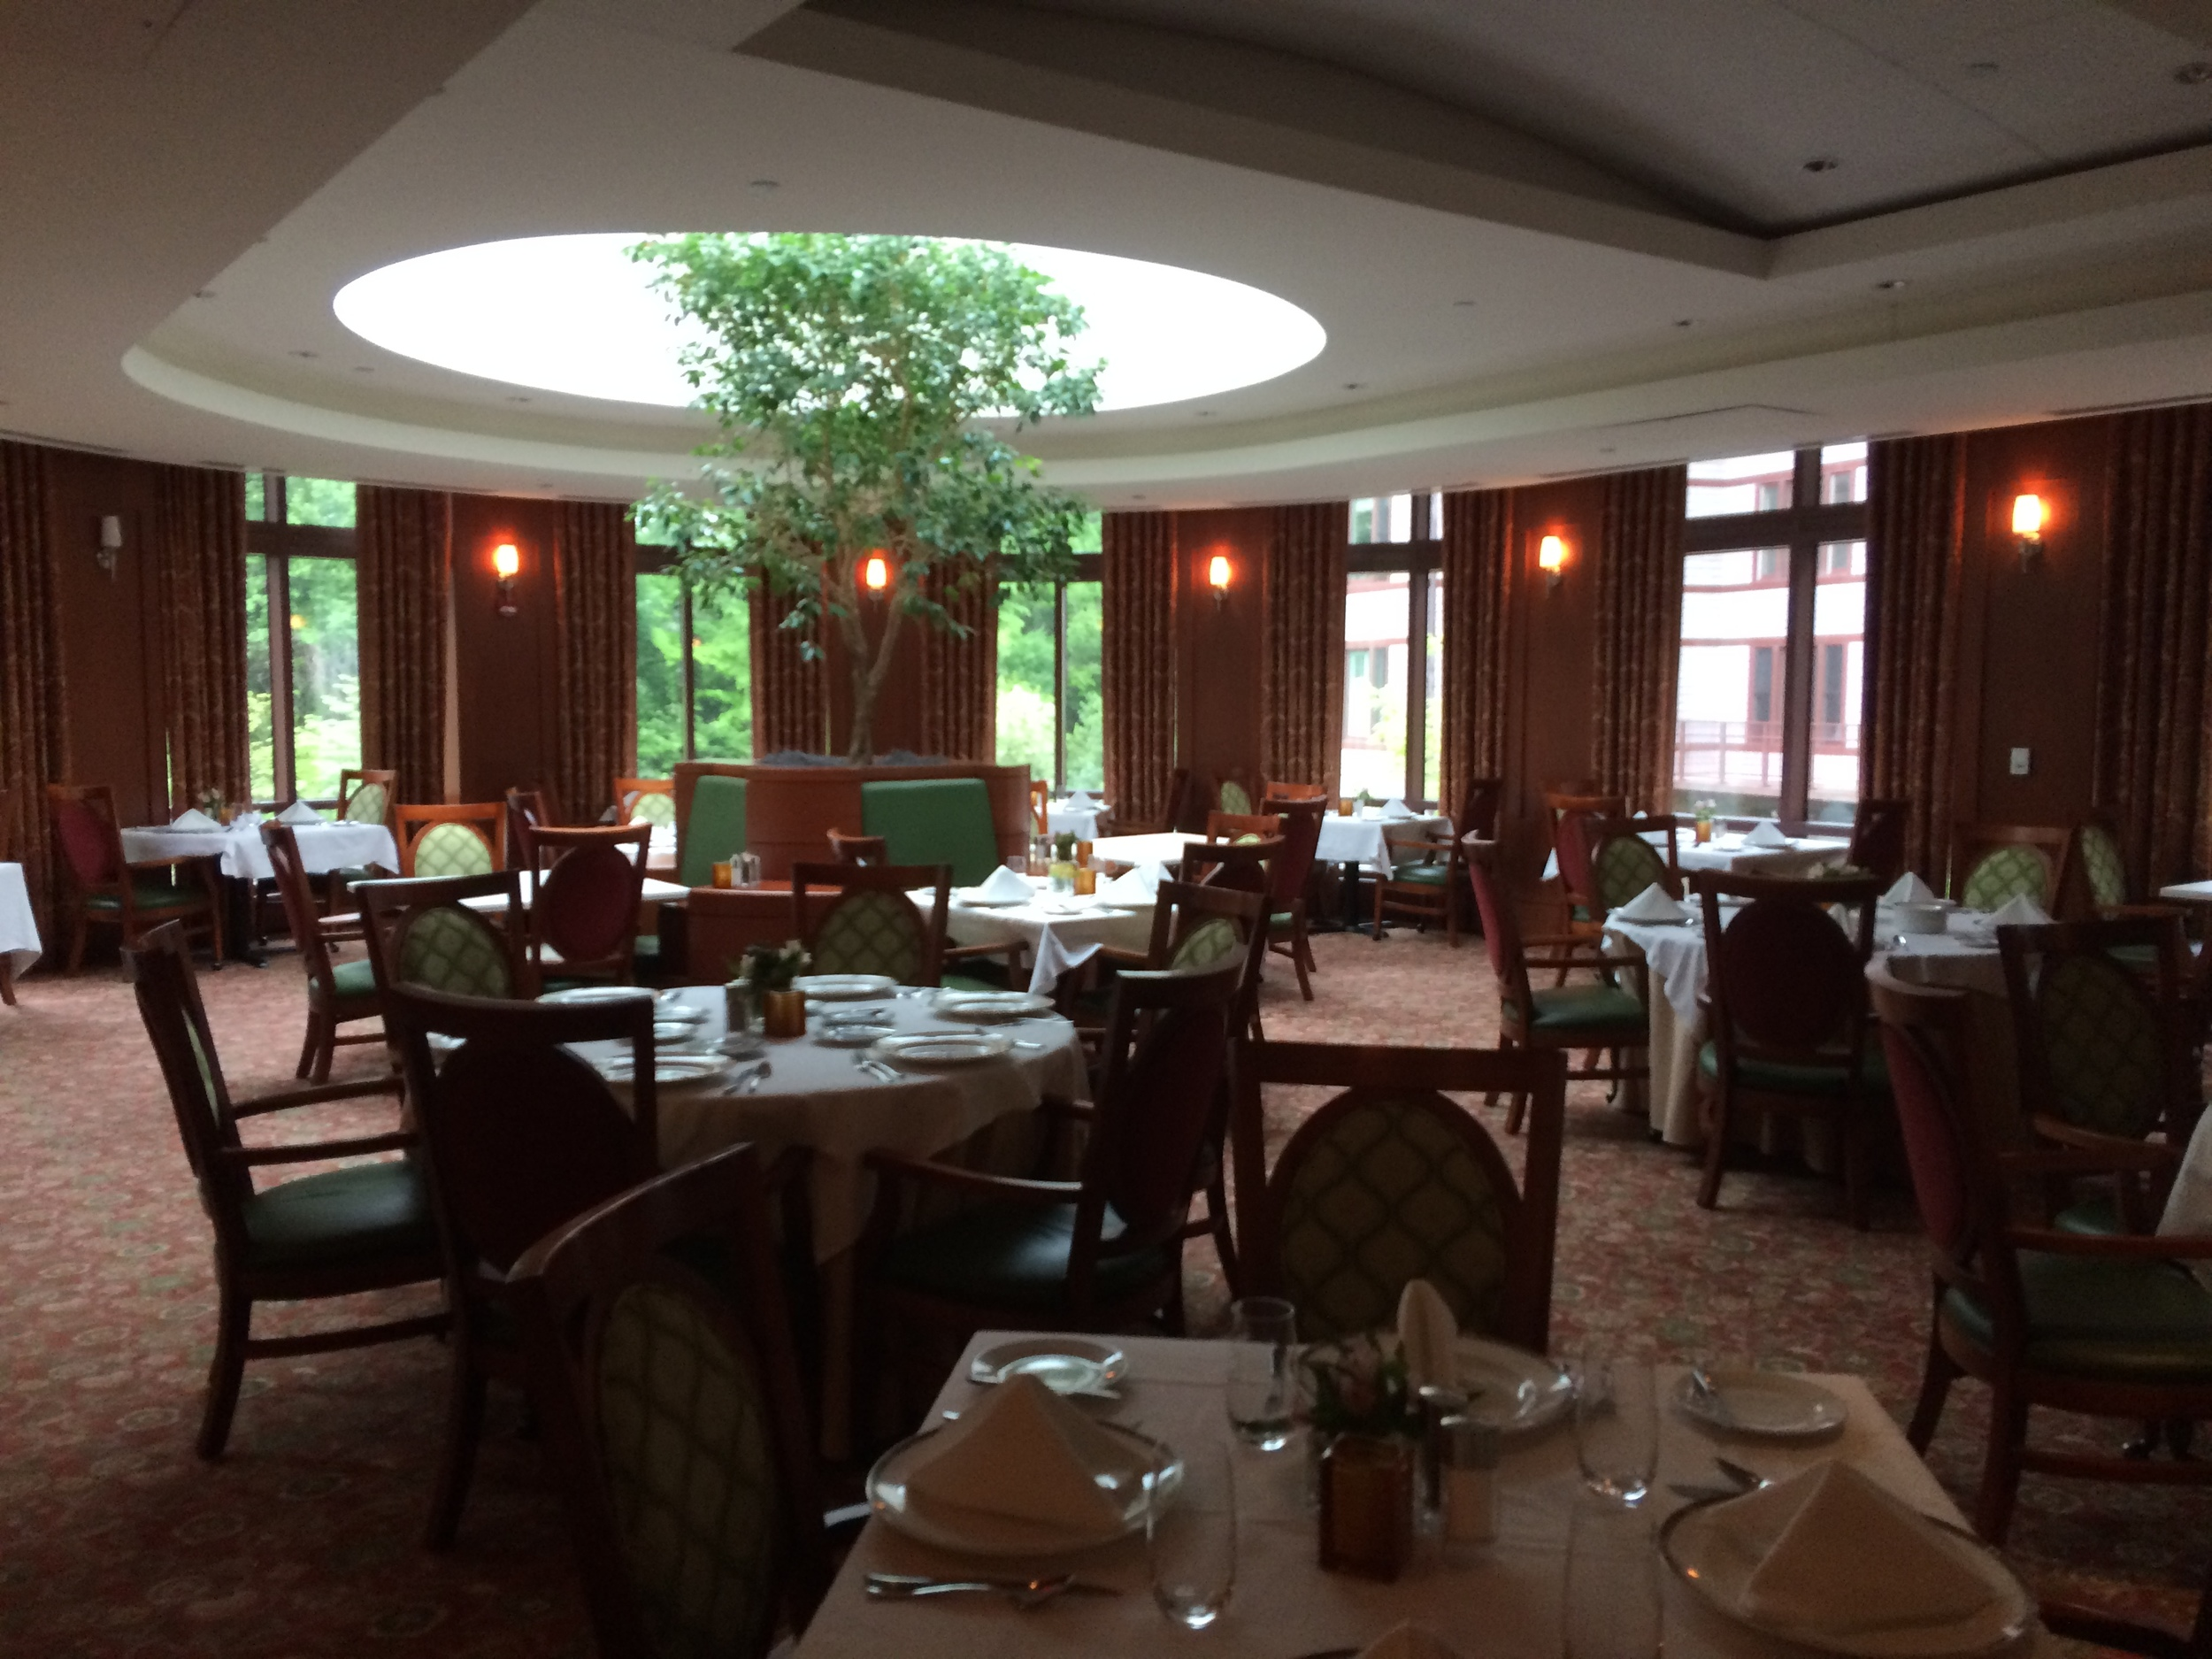 The main dining room at Fox Hill.